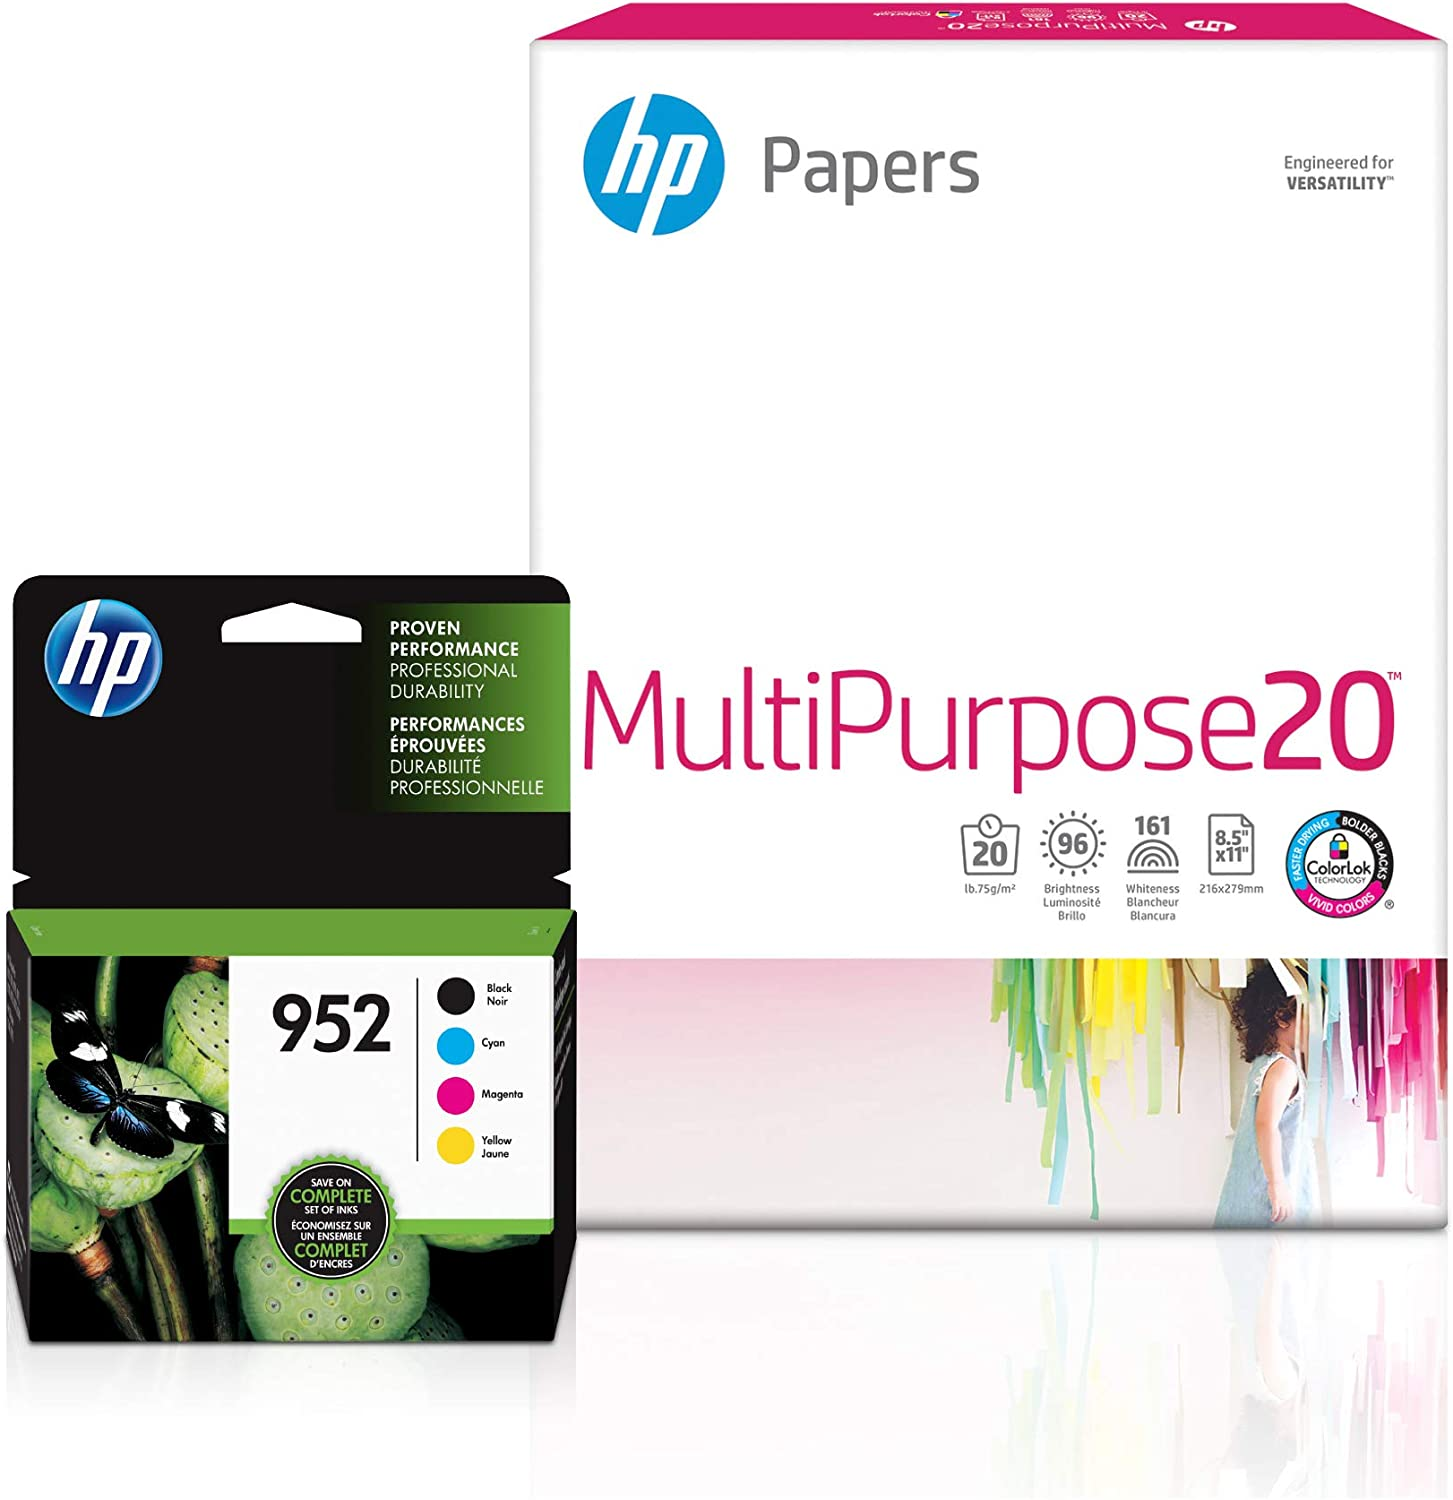 HP 952 | 4 Ink Cartridges with 150 Sheets of 8.5x11 Paper | Black, Tri-Color | F6U15AN, L0S49AN, L0S52AN, L0S55AN